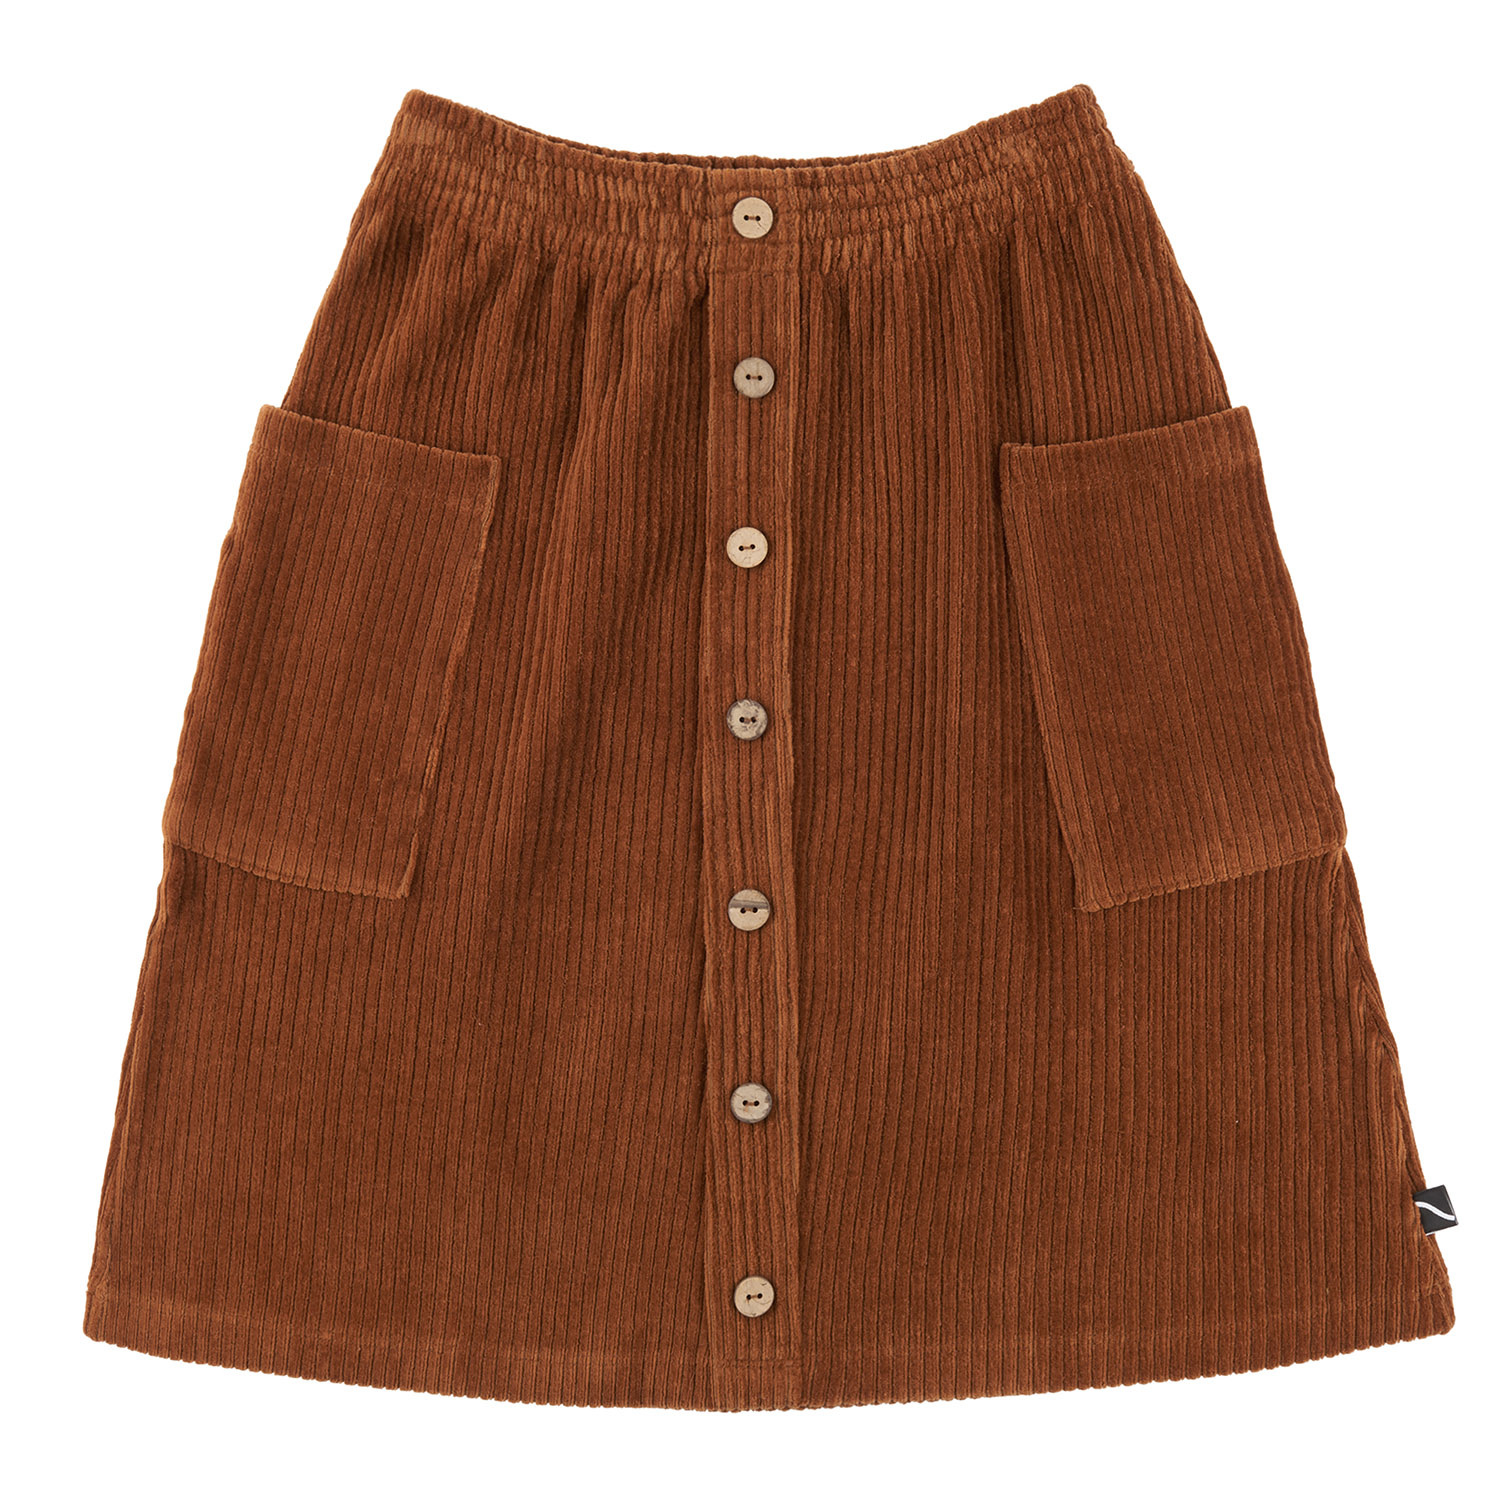 CarlijnQ Midi skirt with buttons and pockets| brown